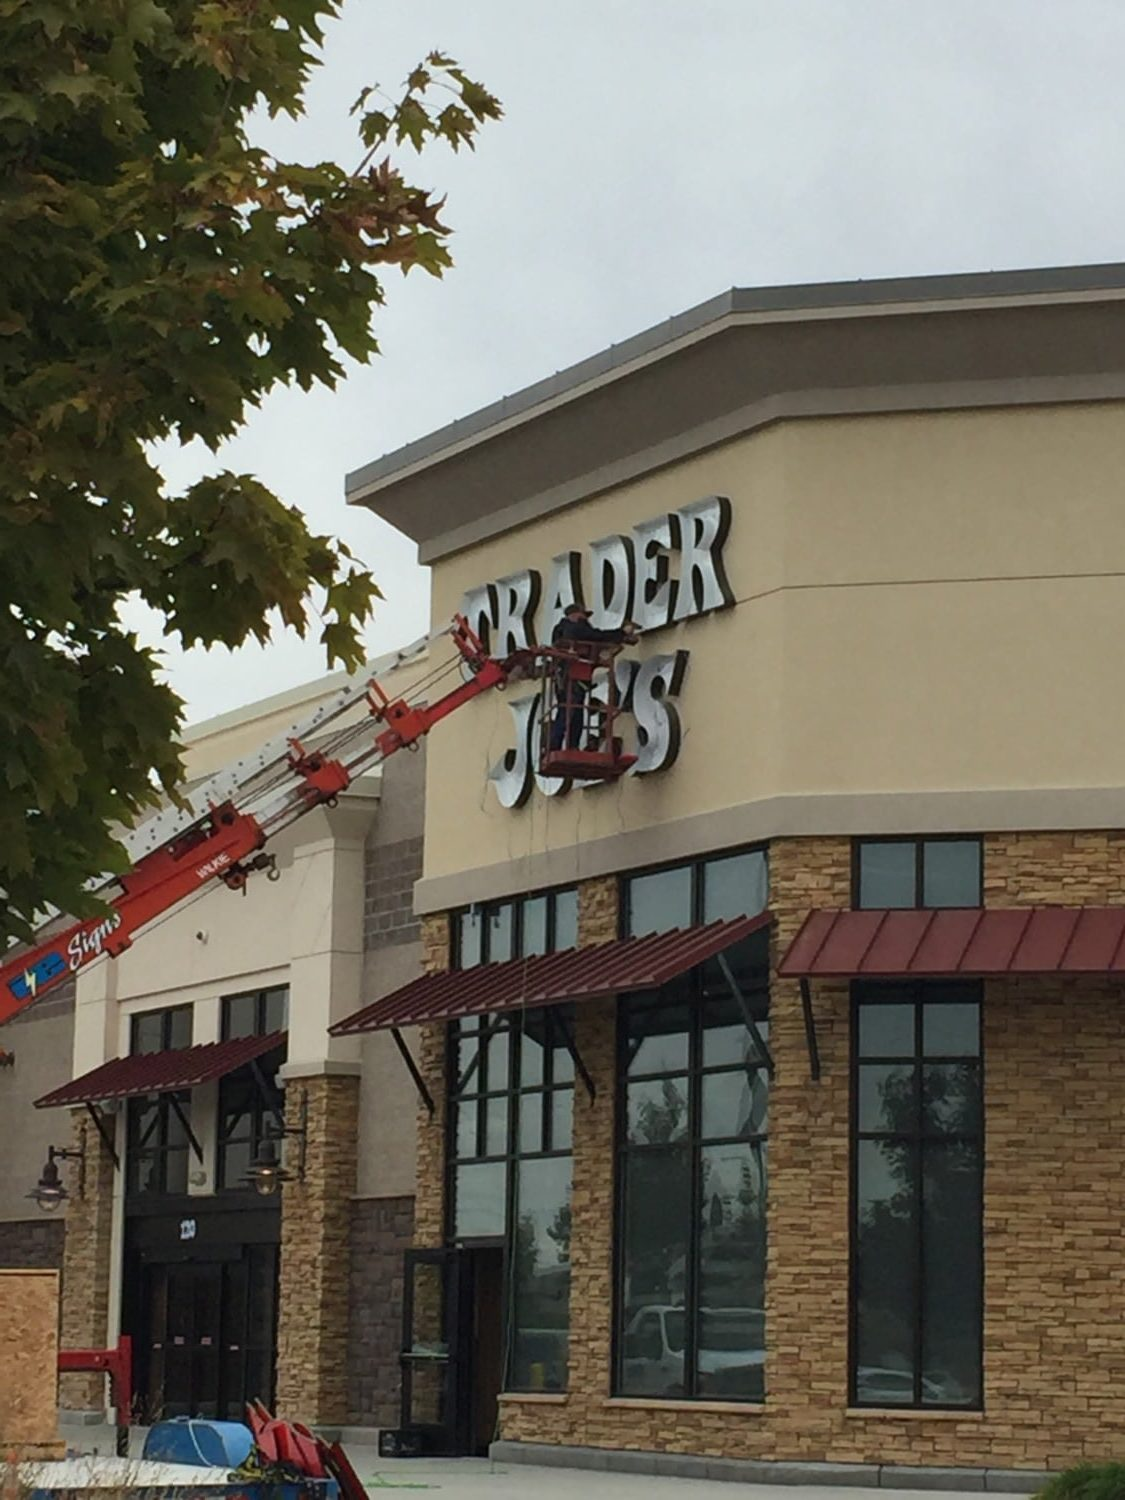 Trader Joe's in Meridian, ID sets opening date - BoiseDev on map of cargill locations, map of chick-fil-a locations, map of whole foods market locations, map of winco foods locations, map of bass pro shops locations, map of citibank locations, map of lifetime fitness locations, map of nasa locations, map of fairway market locations, map of food lion locations, map of qfc locations, map of 7-eleven locations, map of tires plus locations, map of rite aid locations, map of outback steakhouse locations, map of family dollar locations, map of gamestop locations, map of la fitness locations, map of bank of america locations, map of sears locations,